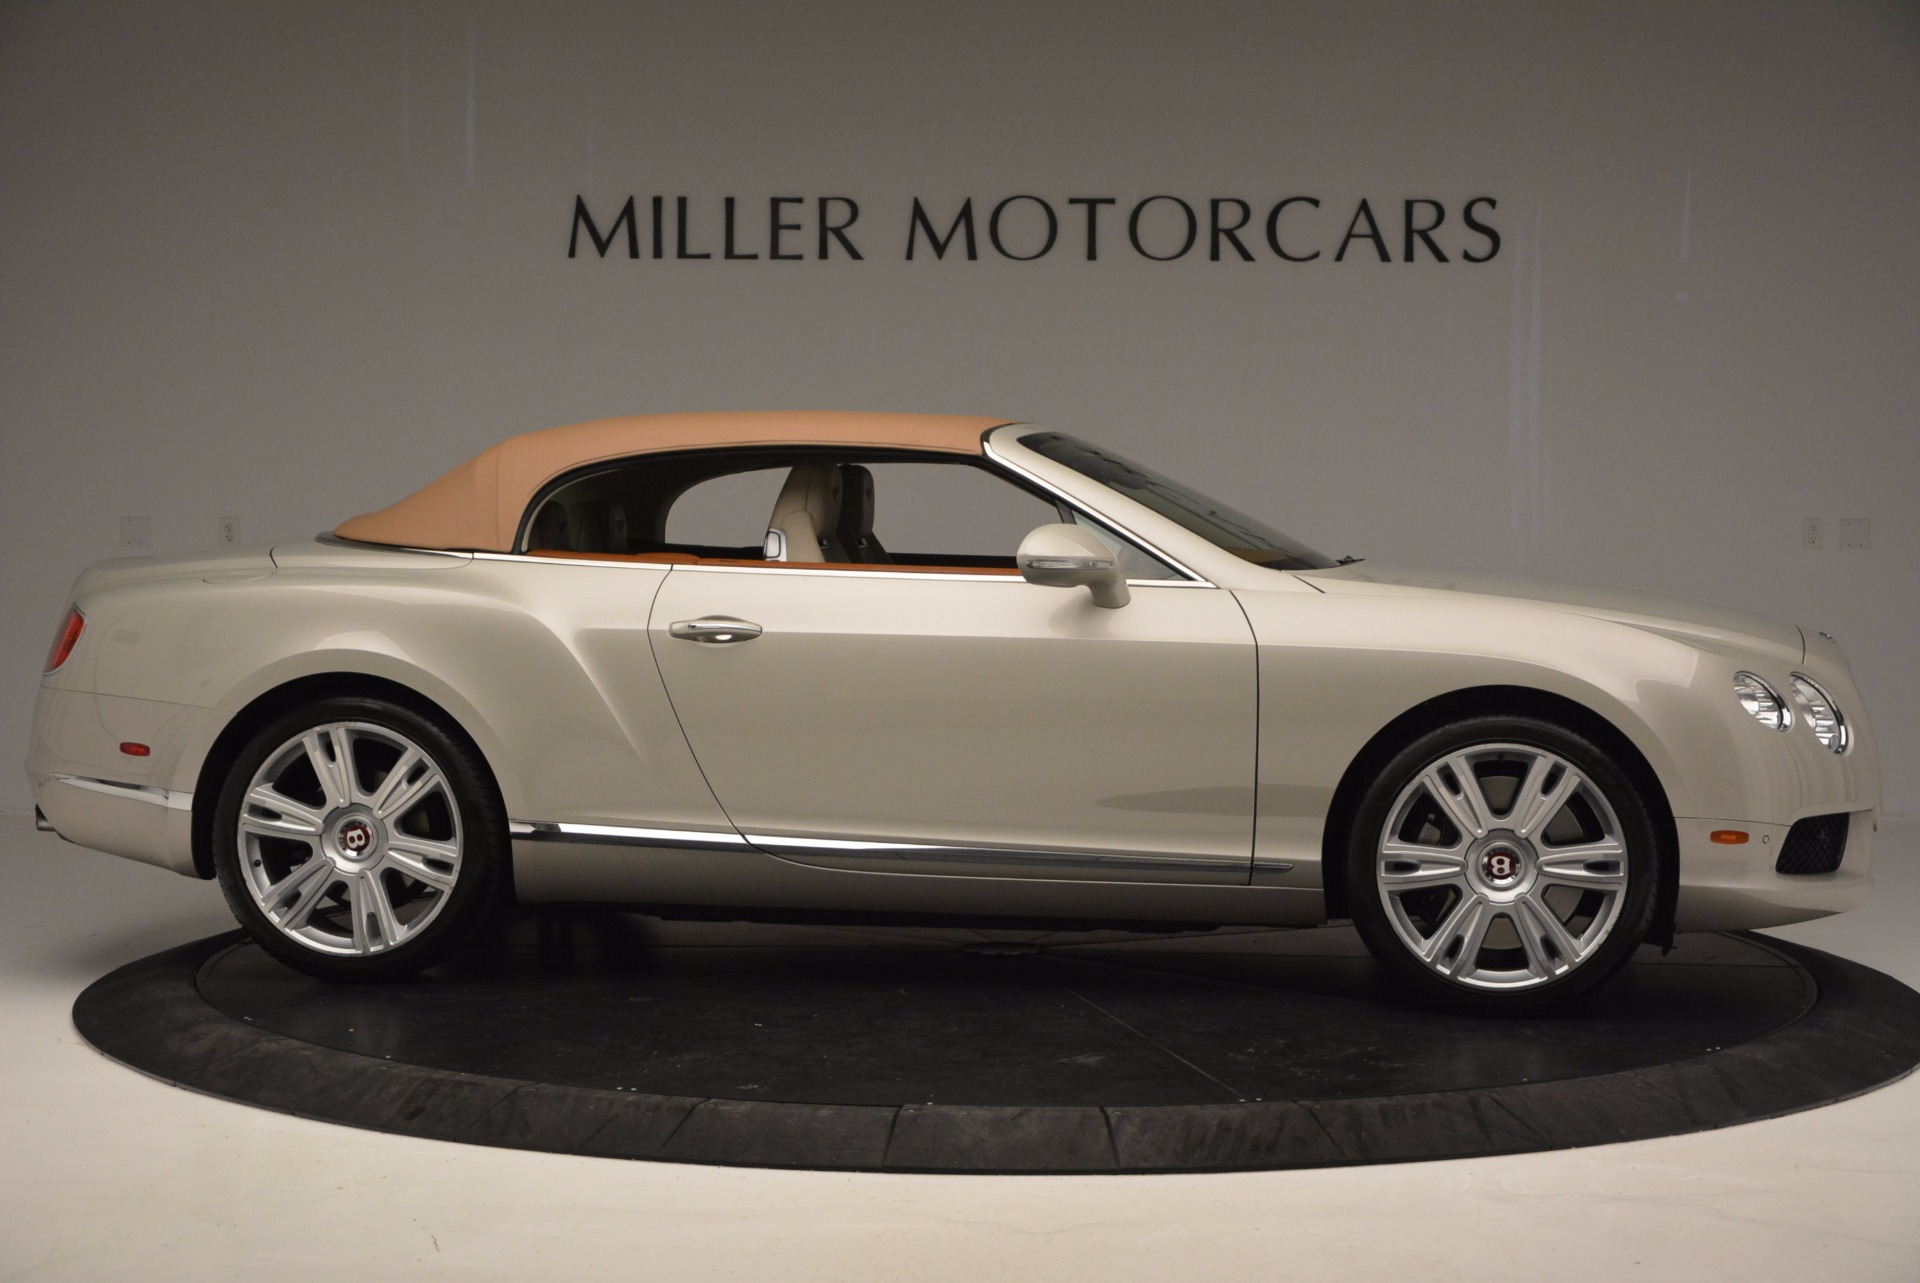 Used 2013 Bentley Continental GTC V8  For Sale In Greenwich, CT. Alfa Romeo of Greenwich, 7108 675_p22